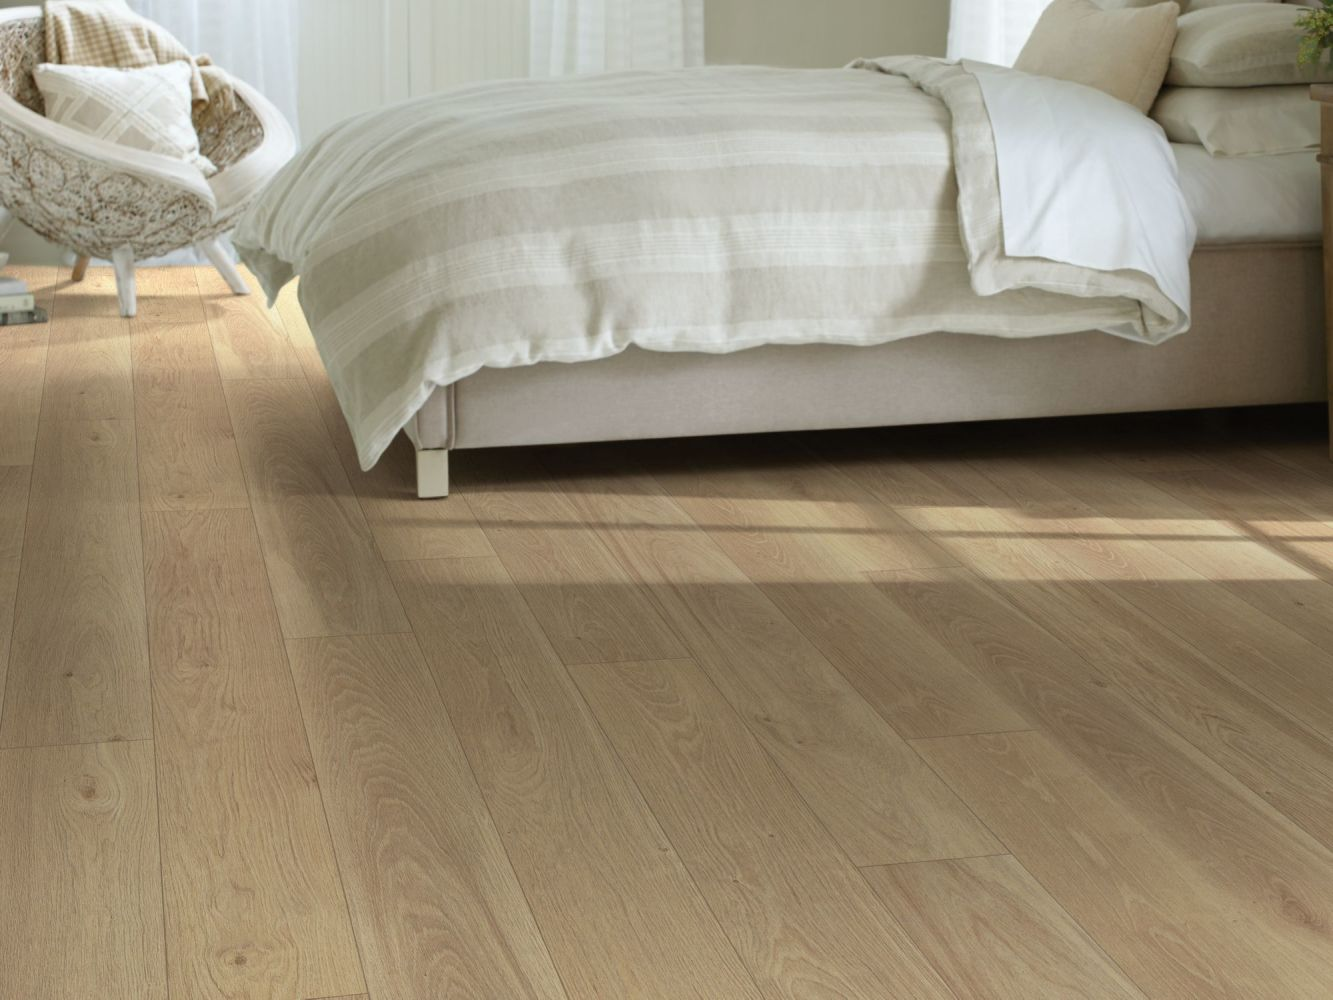 Shaw Floors Resilient Residential Sublime Vision Phoenix 02026_VG090